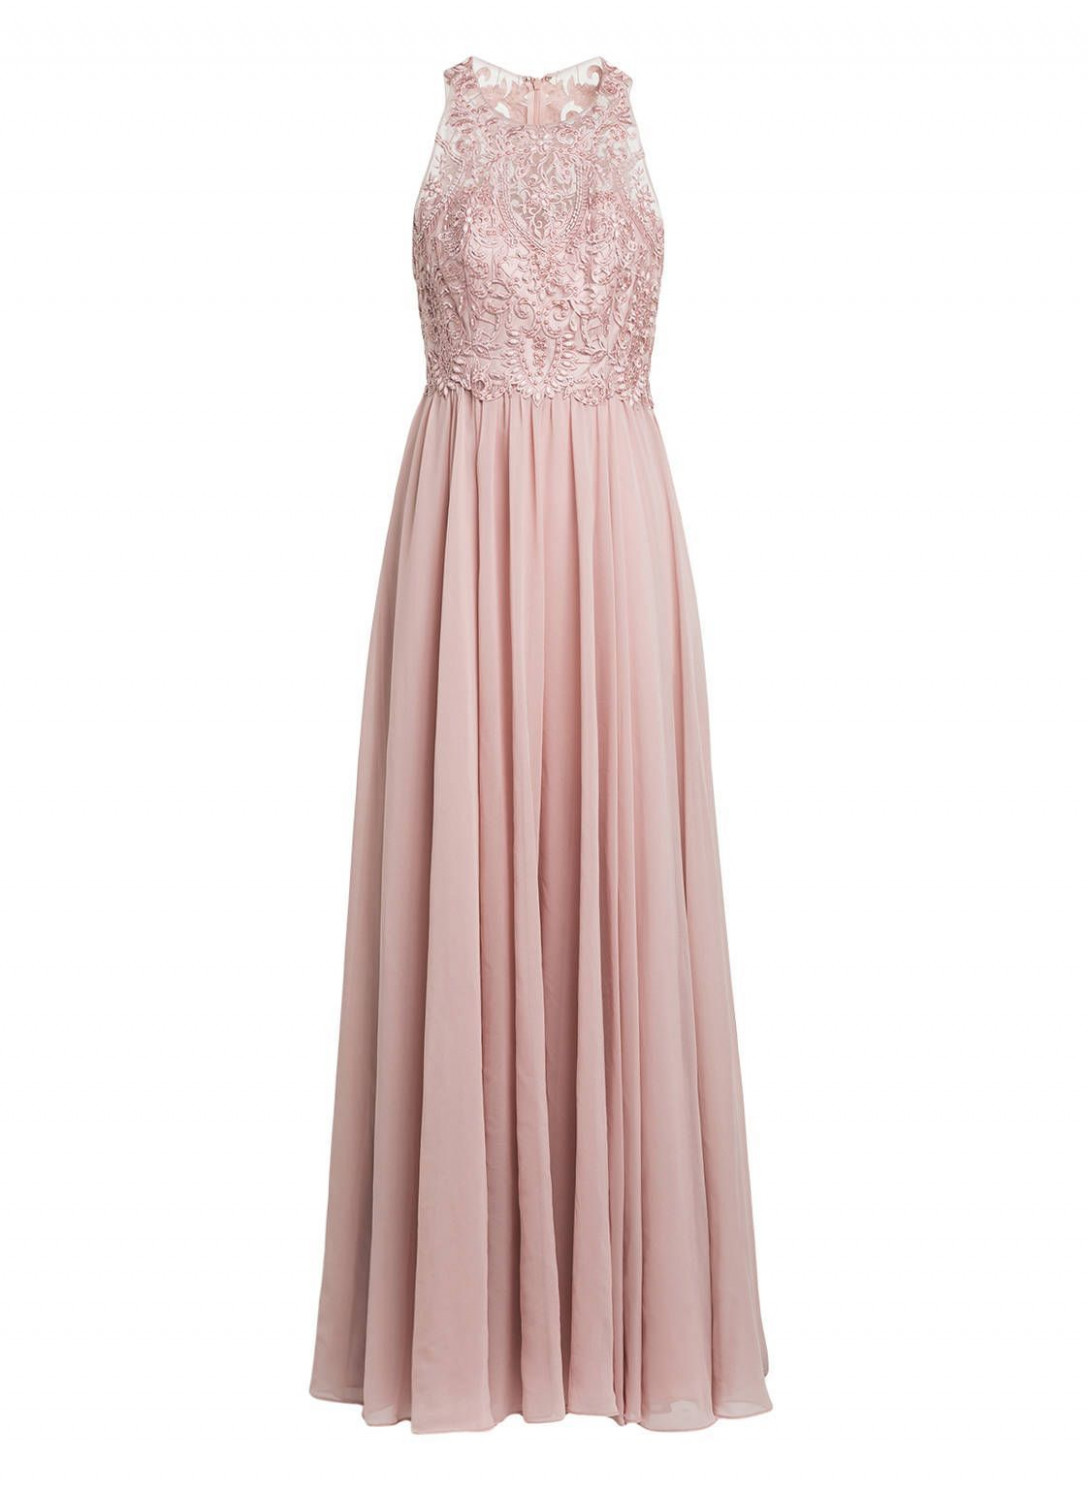 laona evening dress with embroidery altrosa brautjungfernkleider abendkleid altrosa